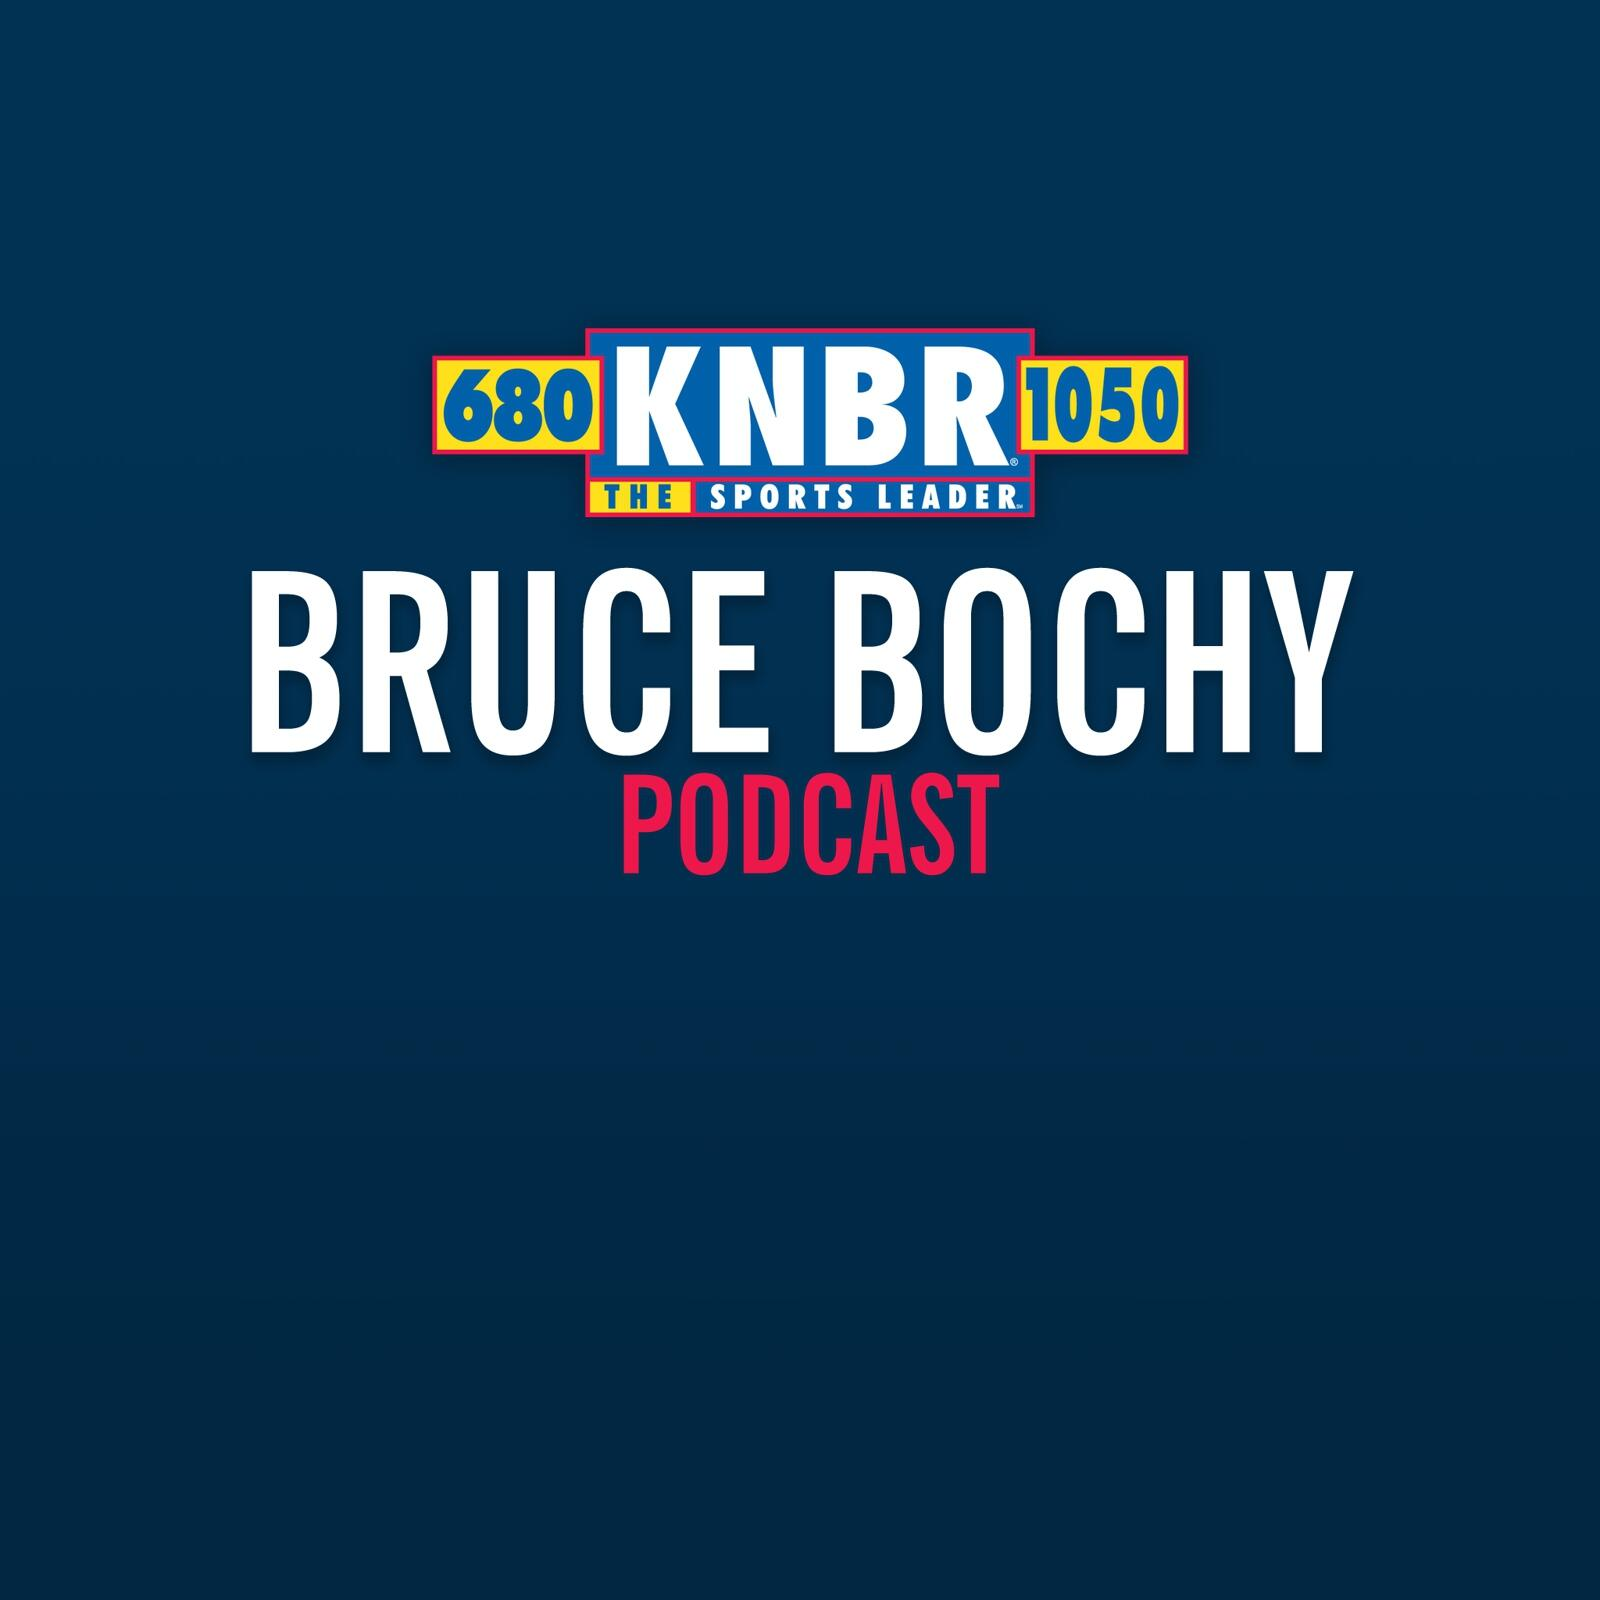 The Bruce Bochy Show